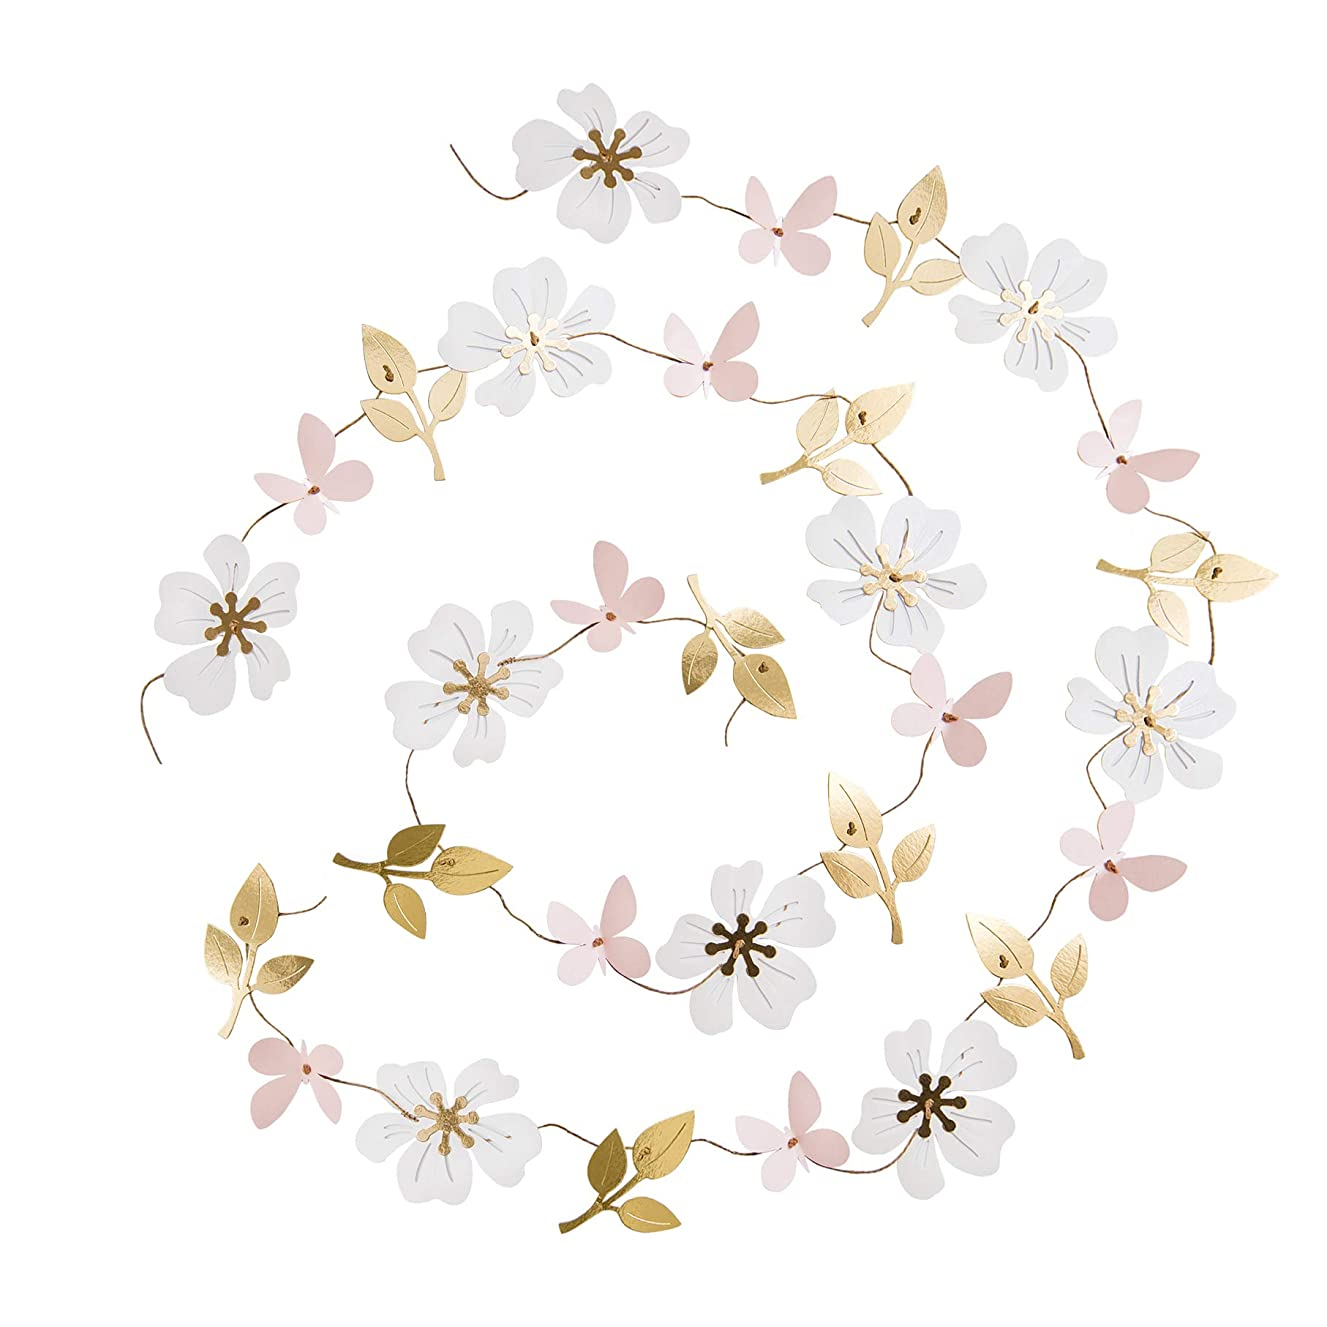 Ling's moment 13FT Paper Butterfly Flower Leaves Garland, Set of 2, Hanging Flower Backdrop Garland for Baby Nursery Birthday Party Wedding Bridal Shower Dorm Room(Gold+Pastel Pink+White)